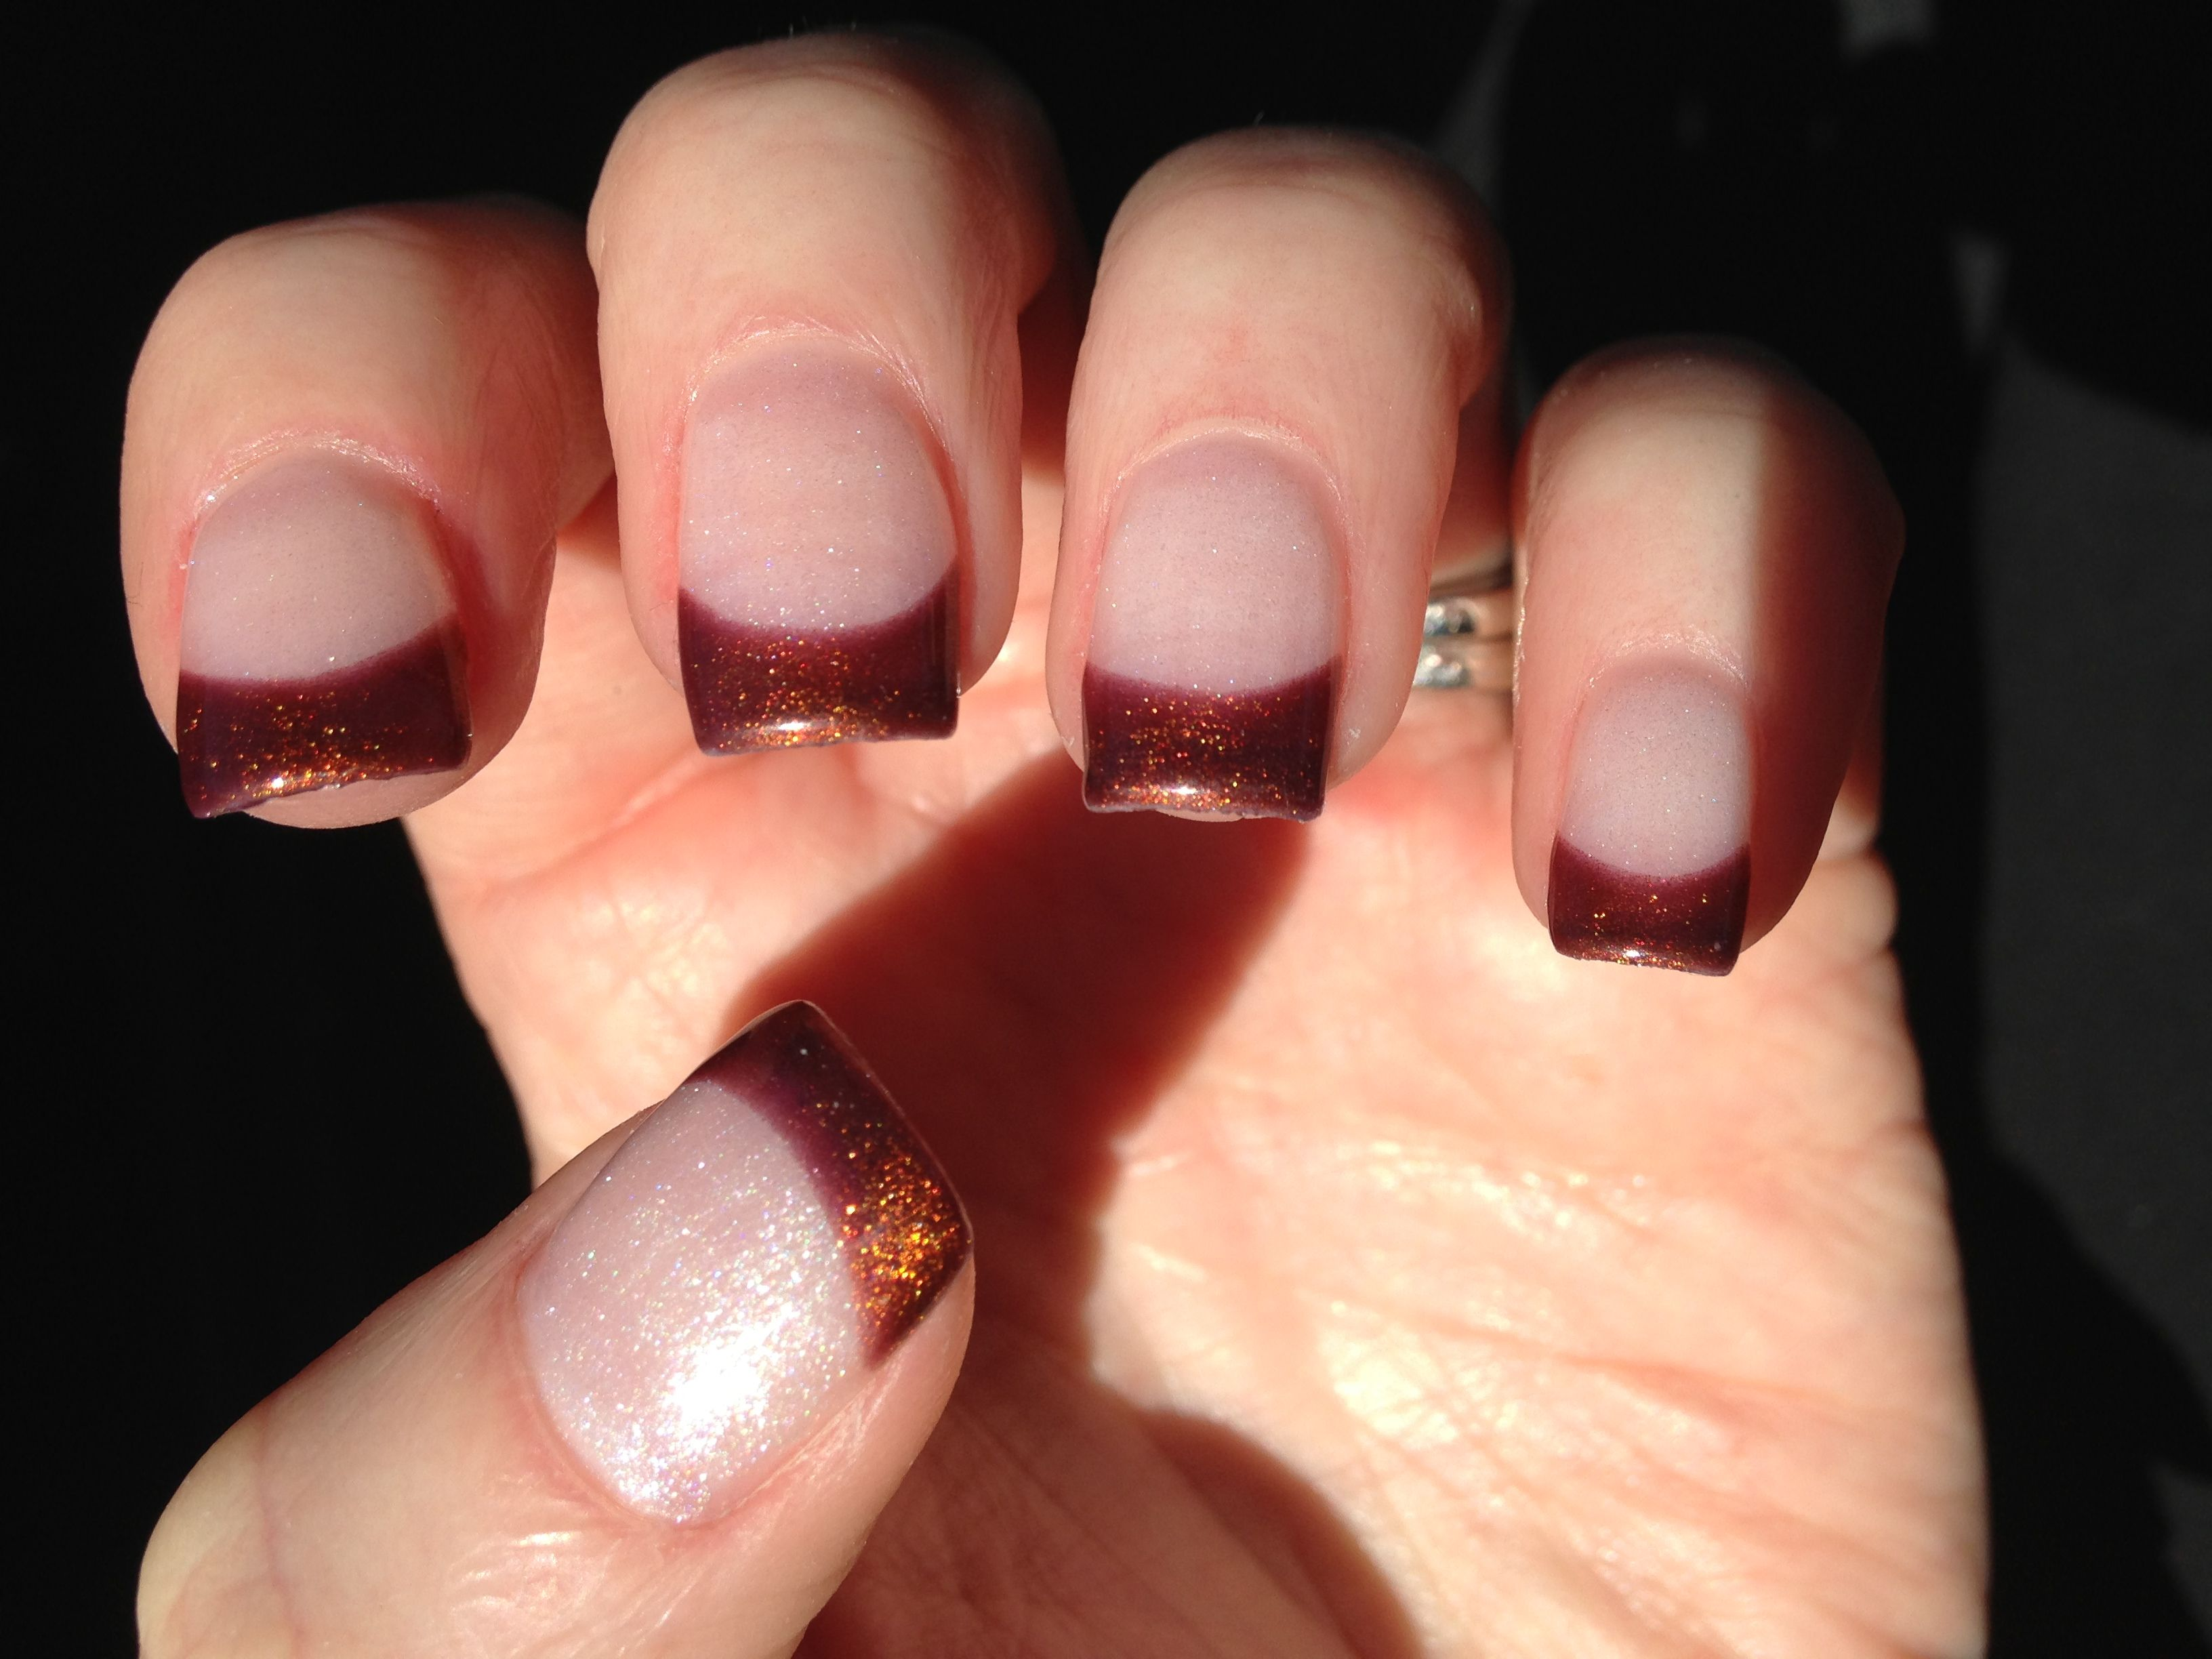 Bronze french manicure for Fall | Hair and Beauty | Pinterest ...